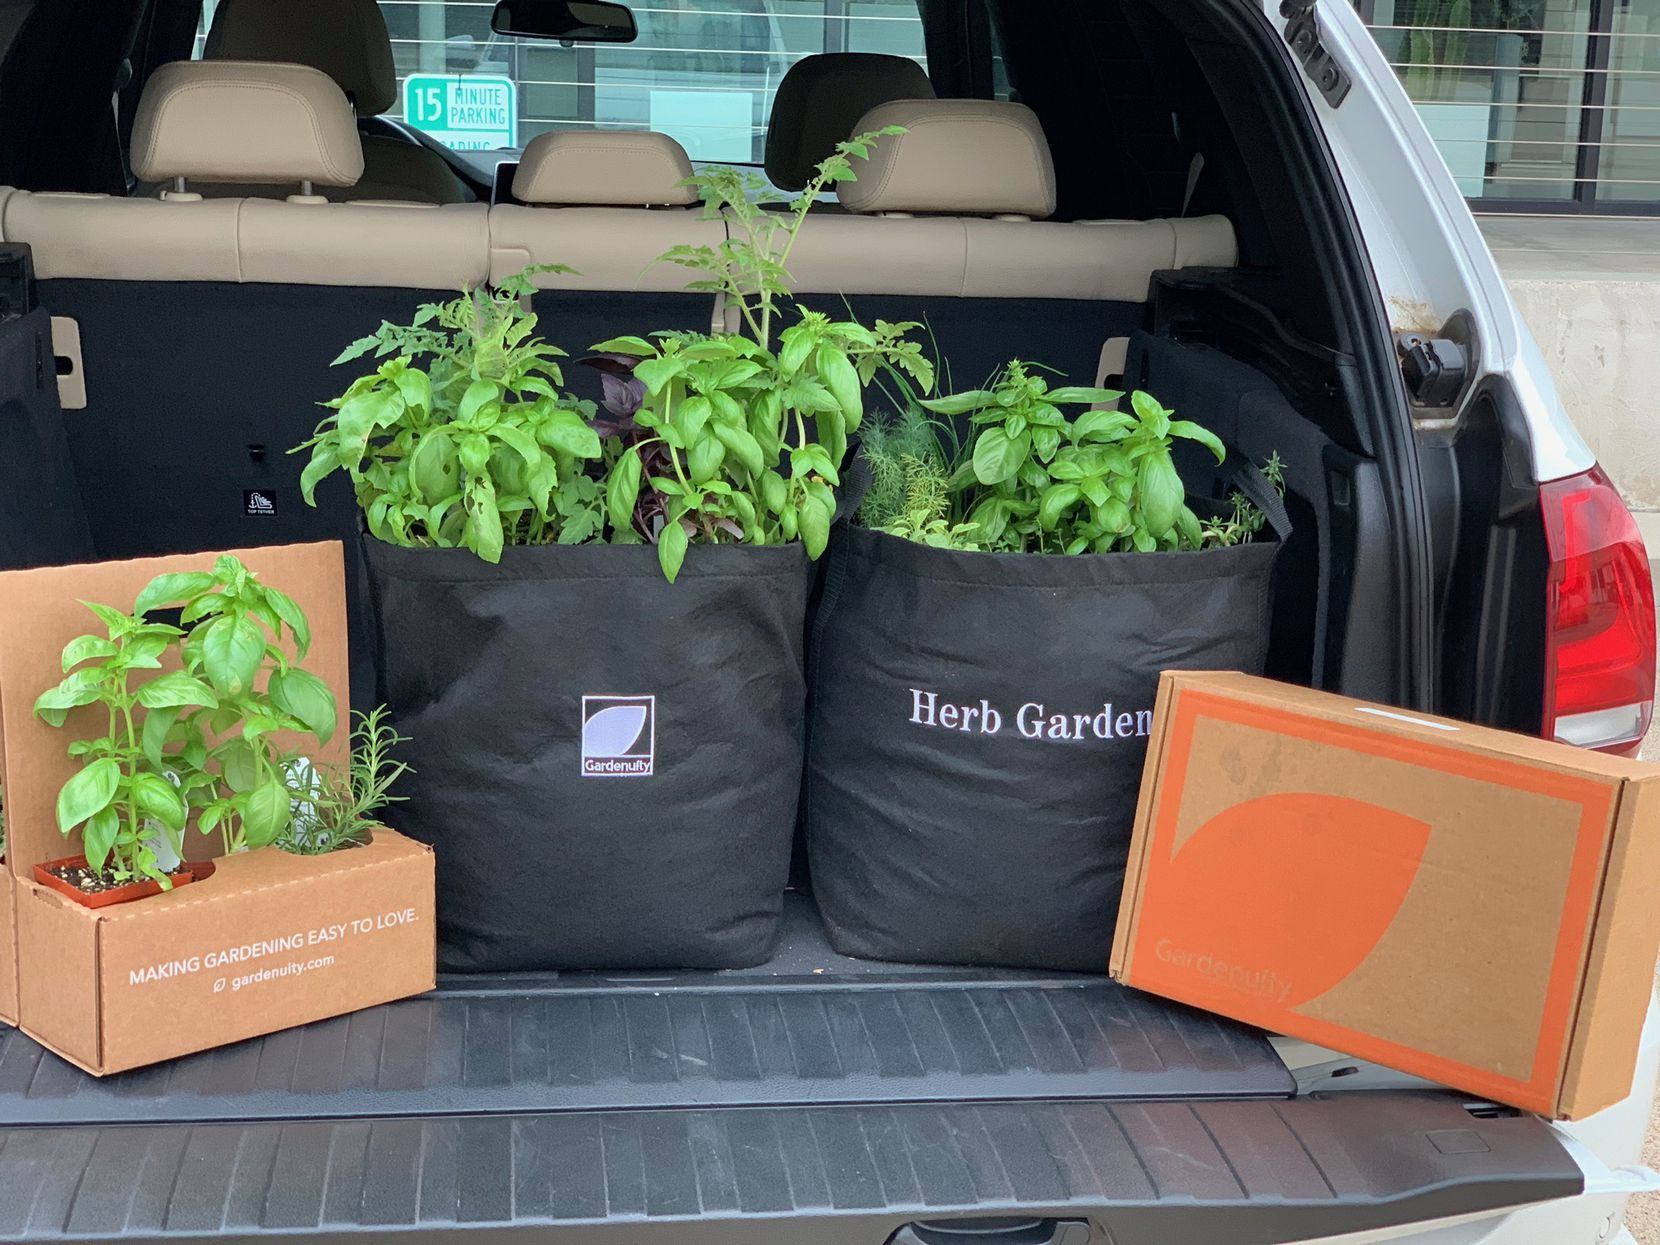 Herb garden delivery from Gardenuity